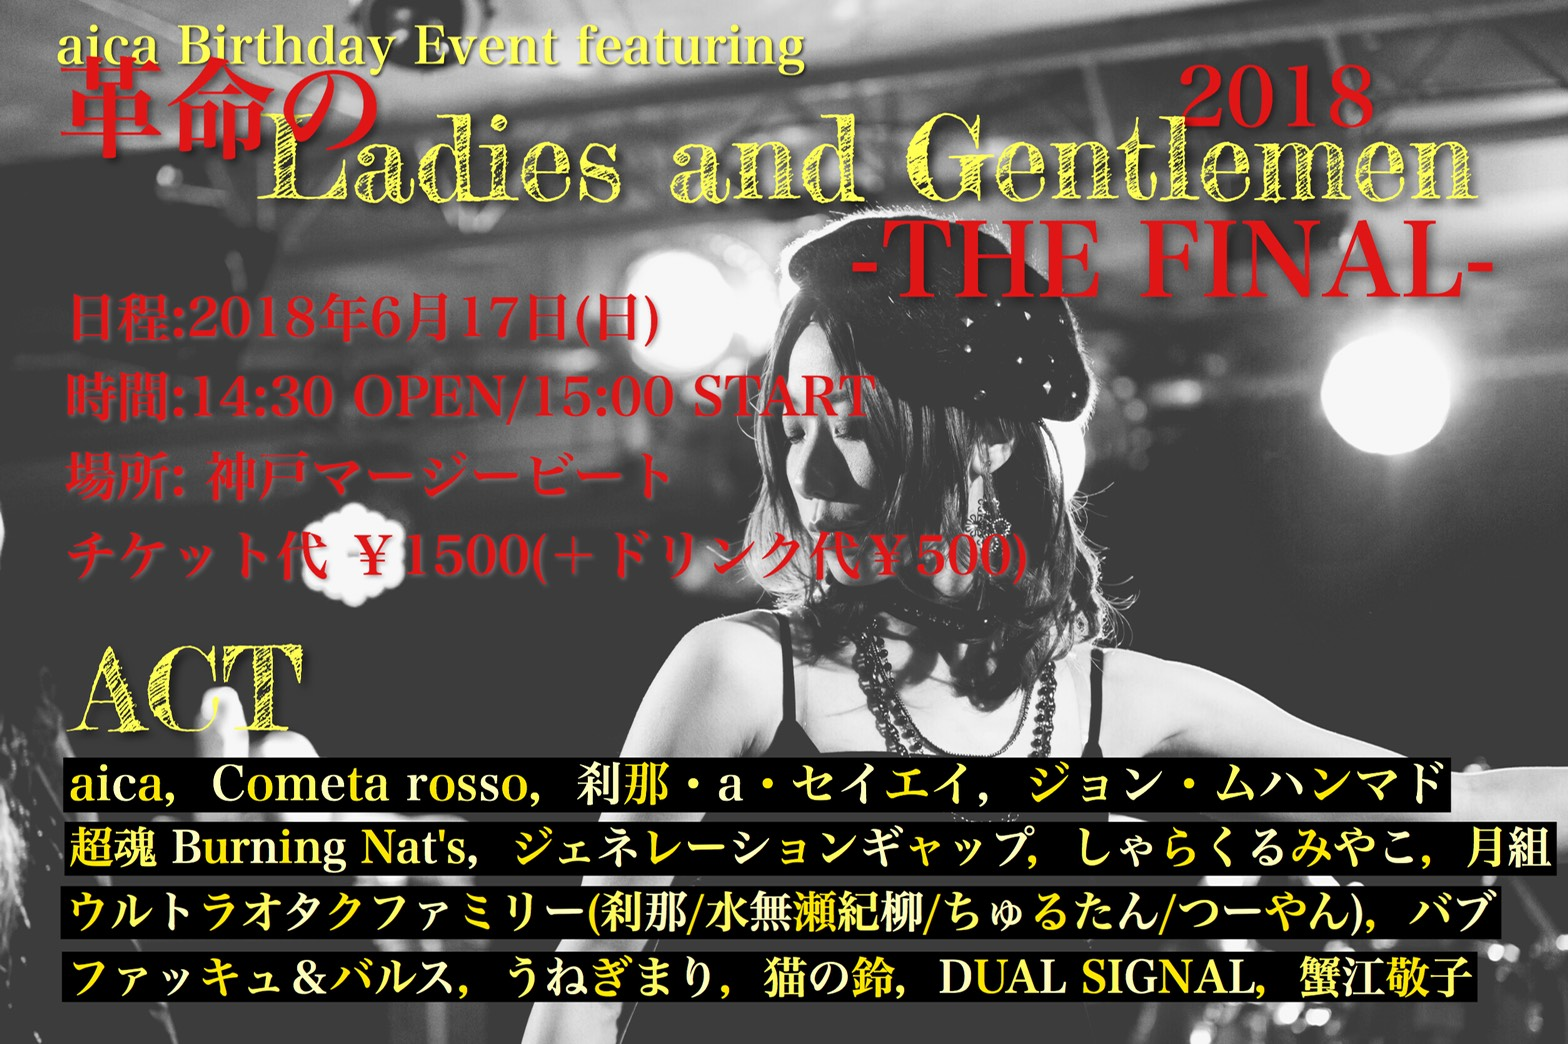 『aica birthday event feat.革命のLadies and Gentlemen 2018-THE FINAL-』